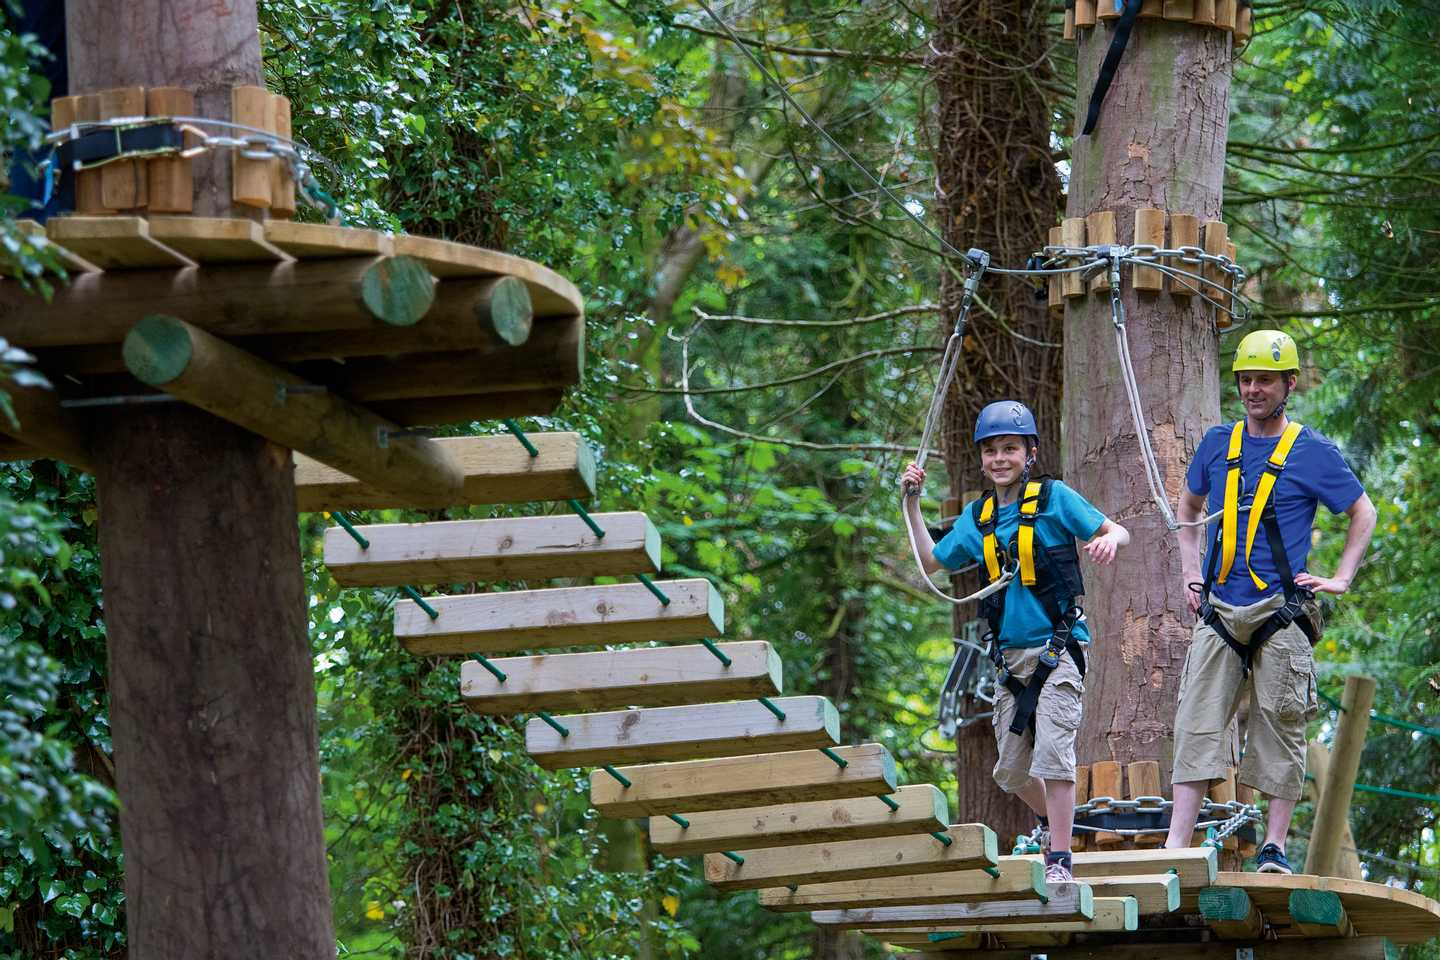 Guests venturing through the treetops on the Aerial Adventure